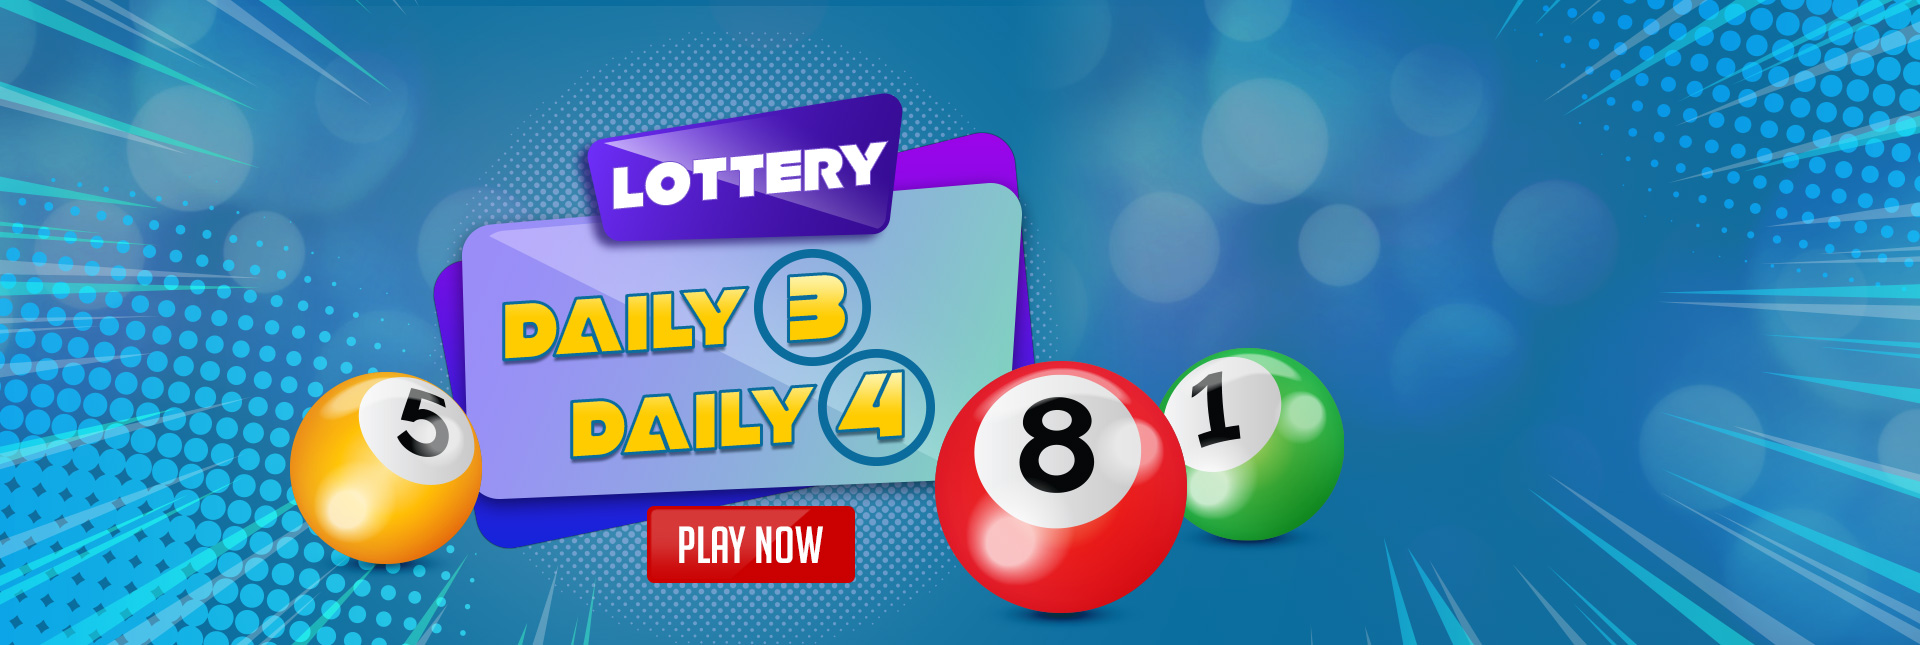 Play Daily 3 and Daily 4 Lottery